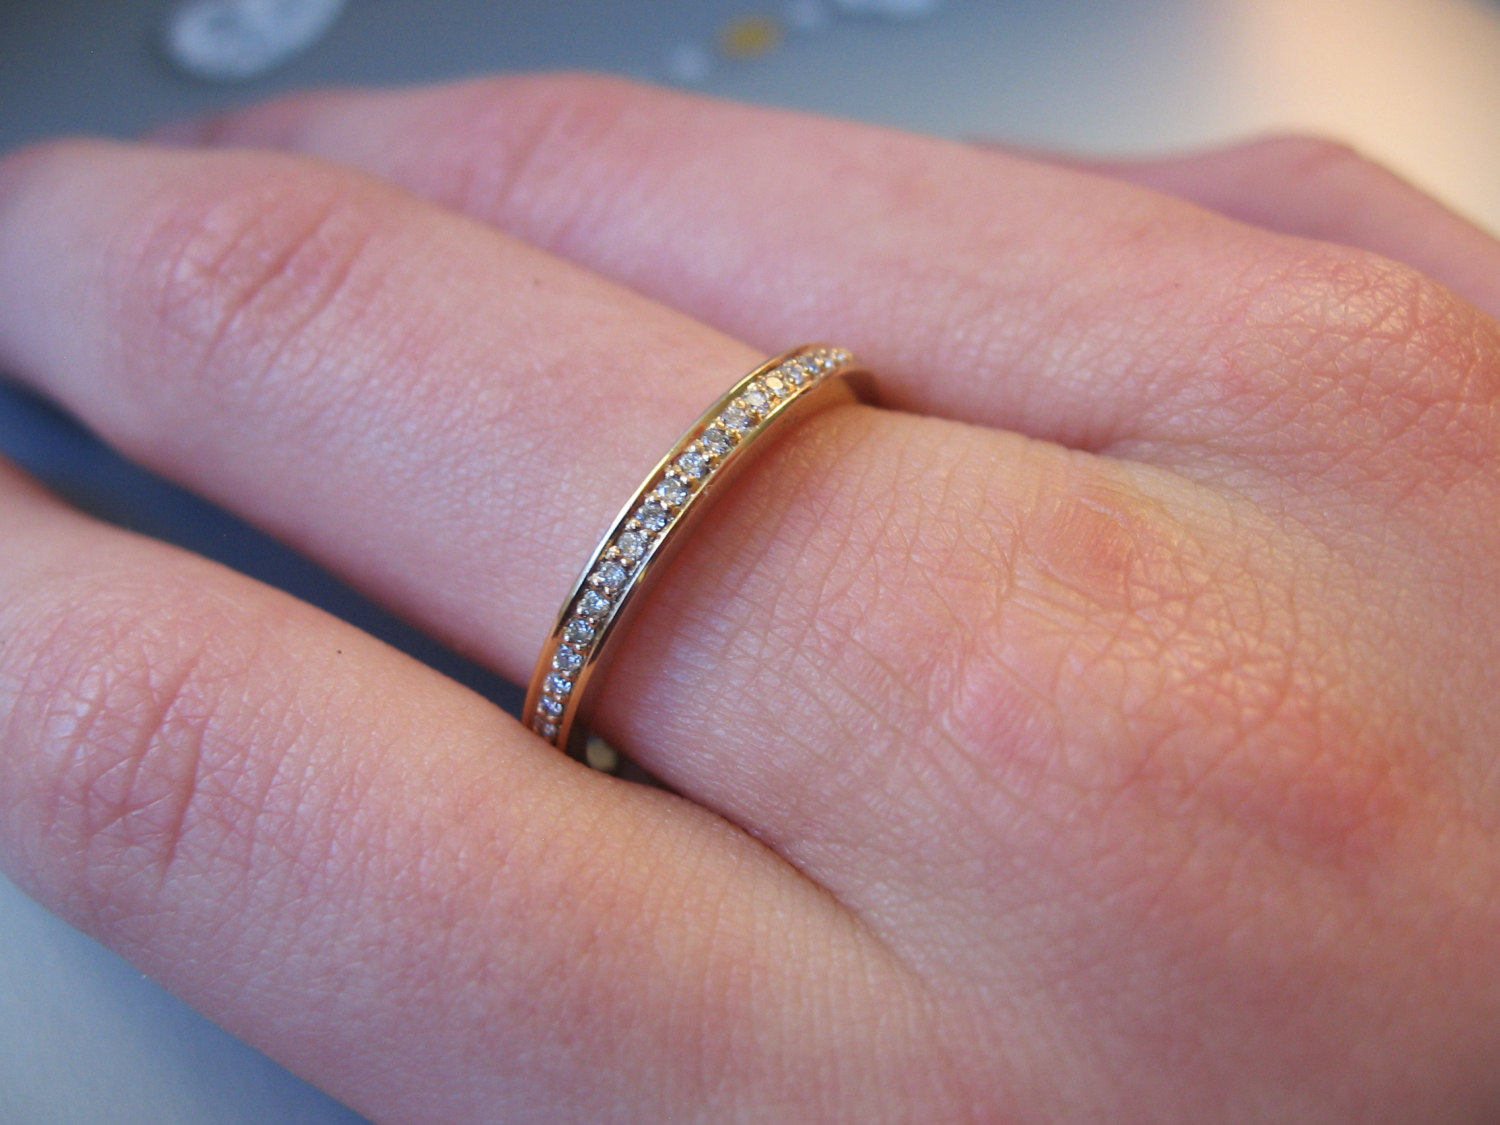 Micro Pave Diamond Eternity Ring 2Mm In 14K Gold, Handmade Diamond Band,  Tiny Diamond Wedding Ring, Engagement Ring, Narrow Wedding Band From Arpelc With Current Full Micropavé Diamond Wedding Bands (Gallery 6 of 25)